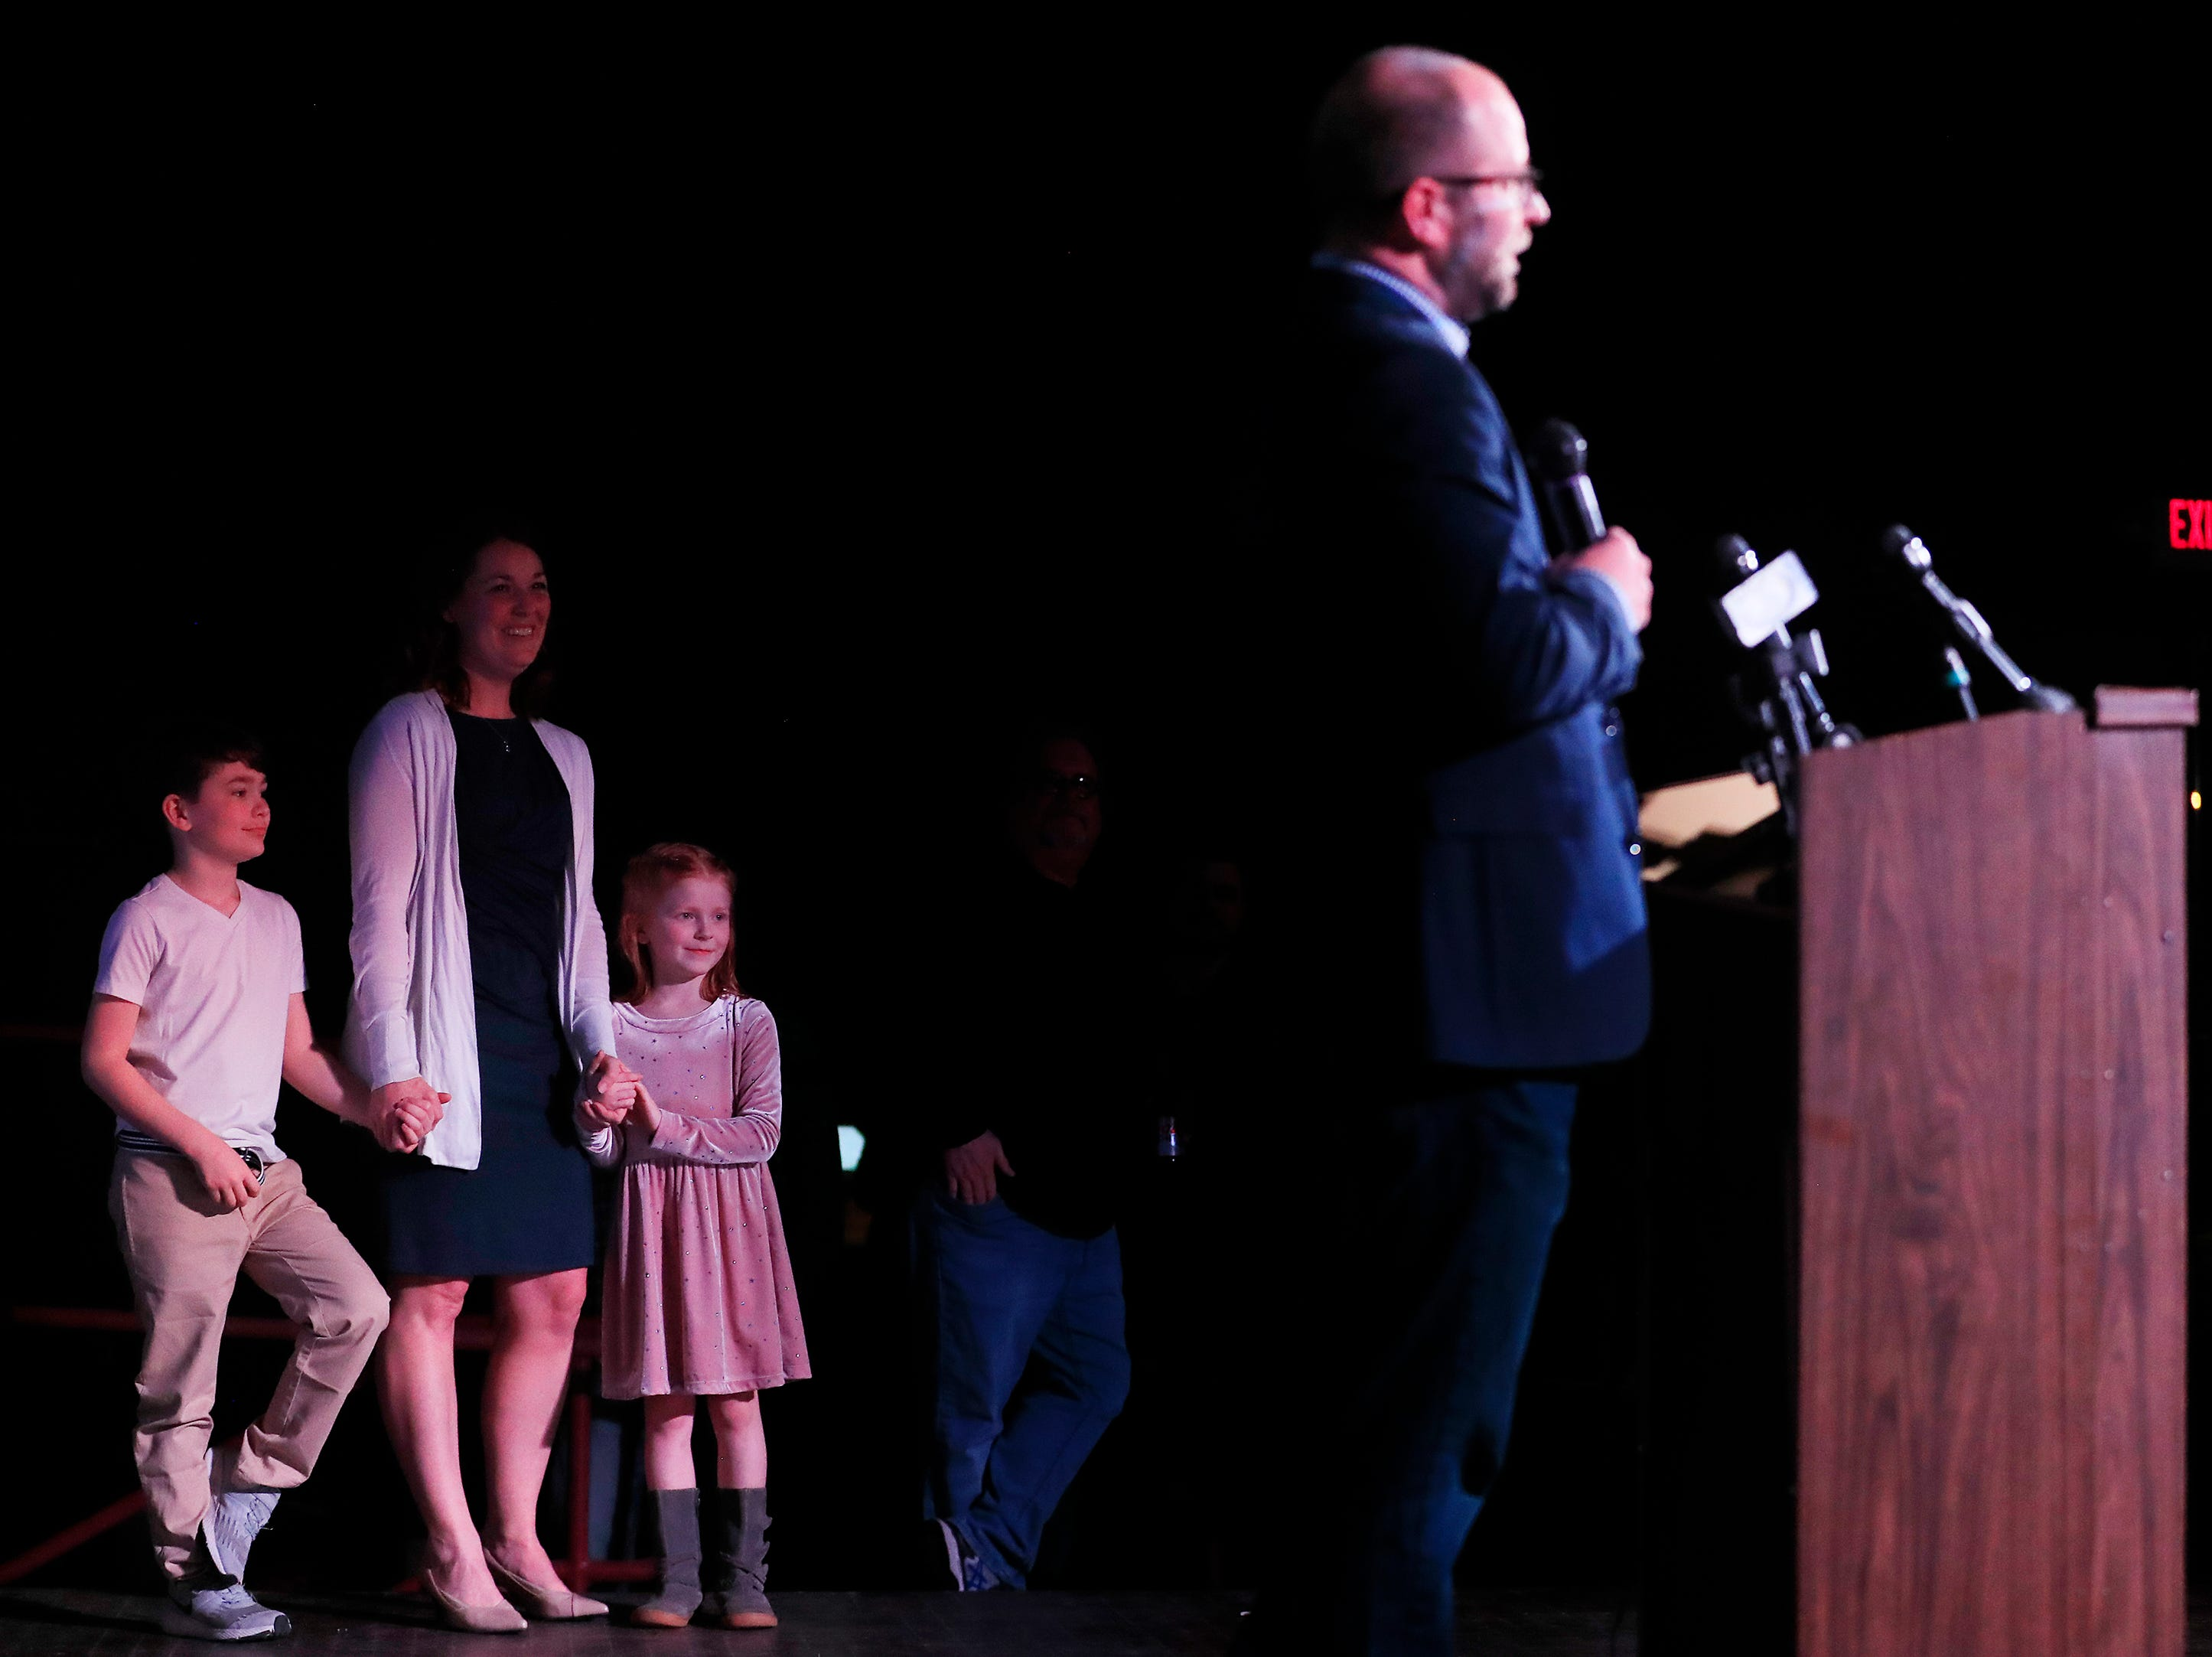 Mayor-elect Eric Genrich's wife Emily, and children Henry and Amelia watch as he gives his victory speech at the Tarlton Theater on Tuesday, April 2, 2019 in Green Bay, Wis.